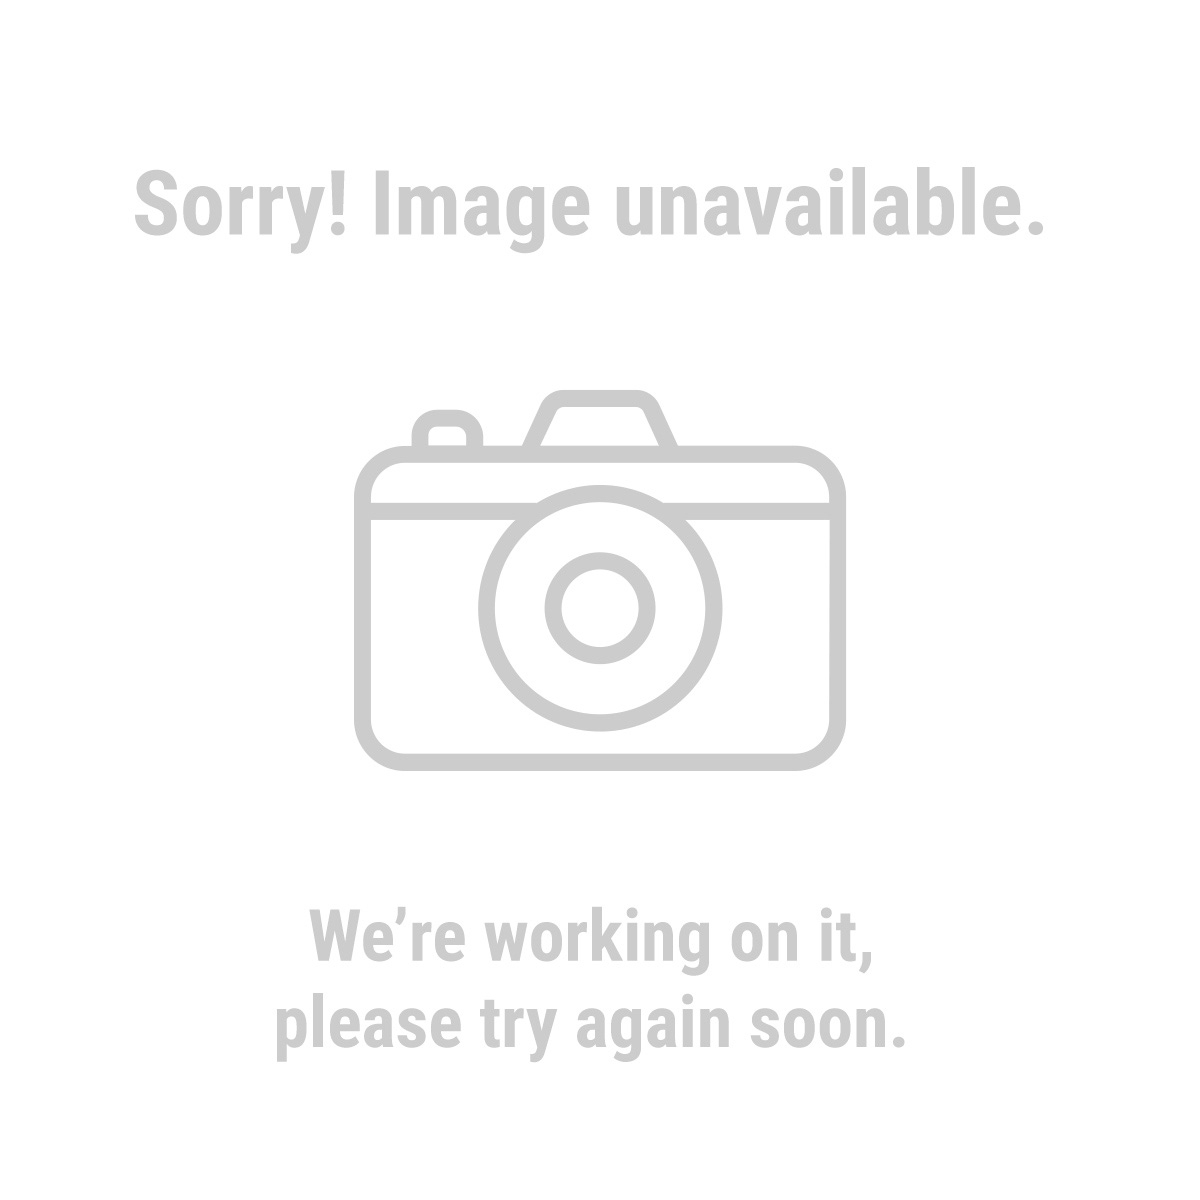 Pacific Hydrostar 68476 3000 GPH Vertical Float Sump Pump